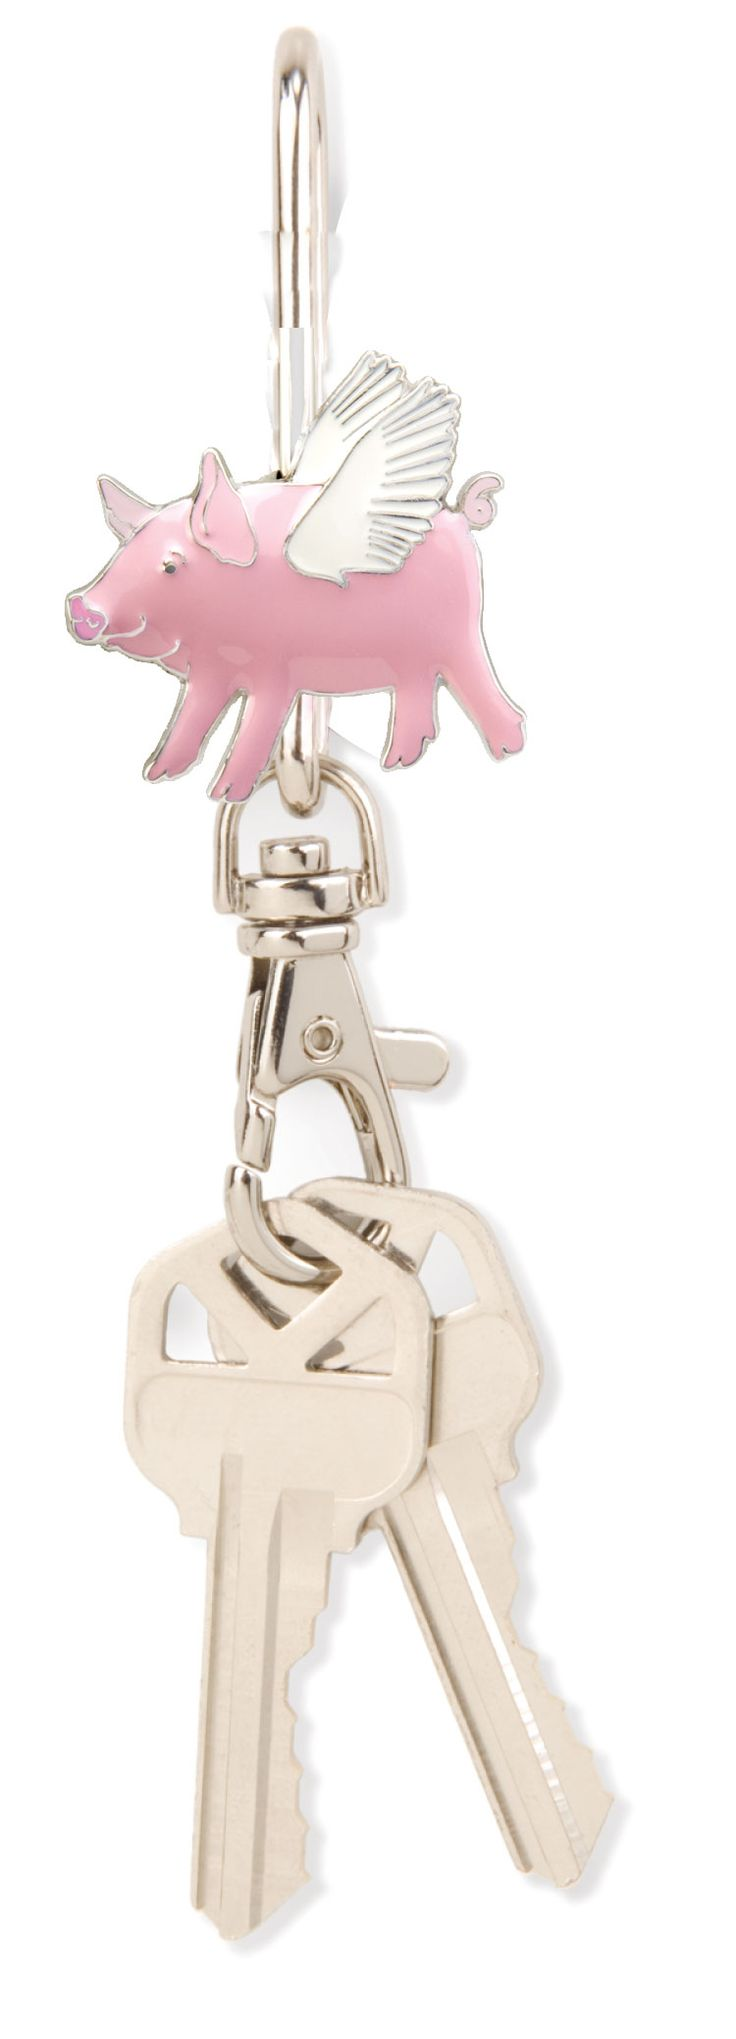 When Pigs Fly Finders Key Purse key finder